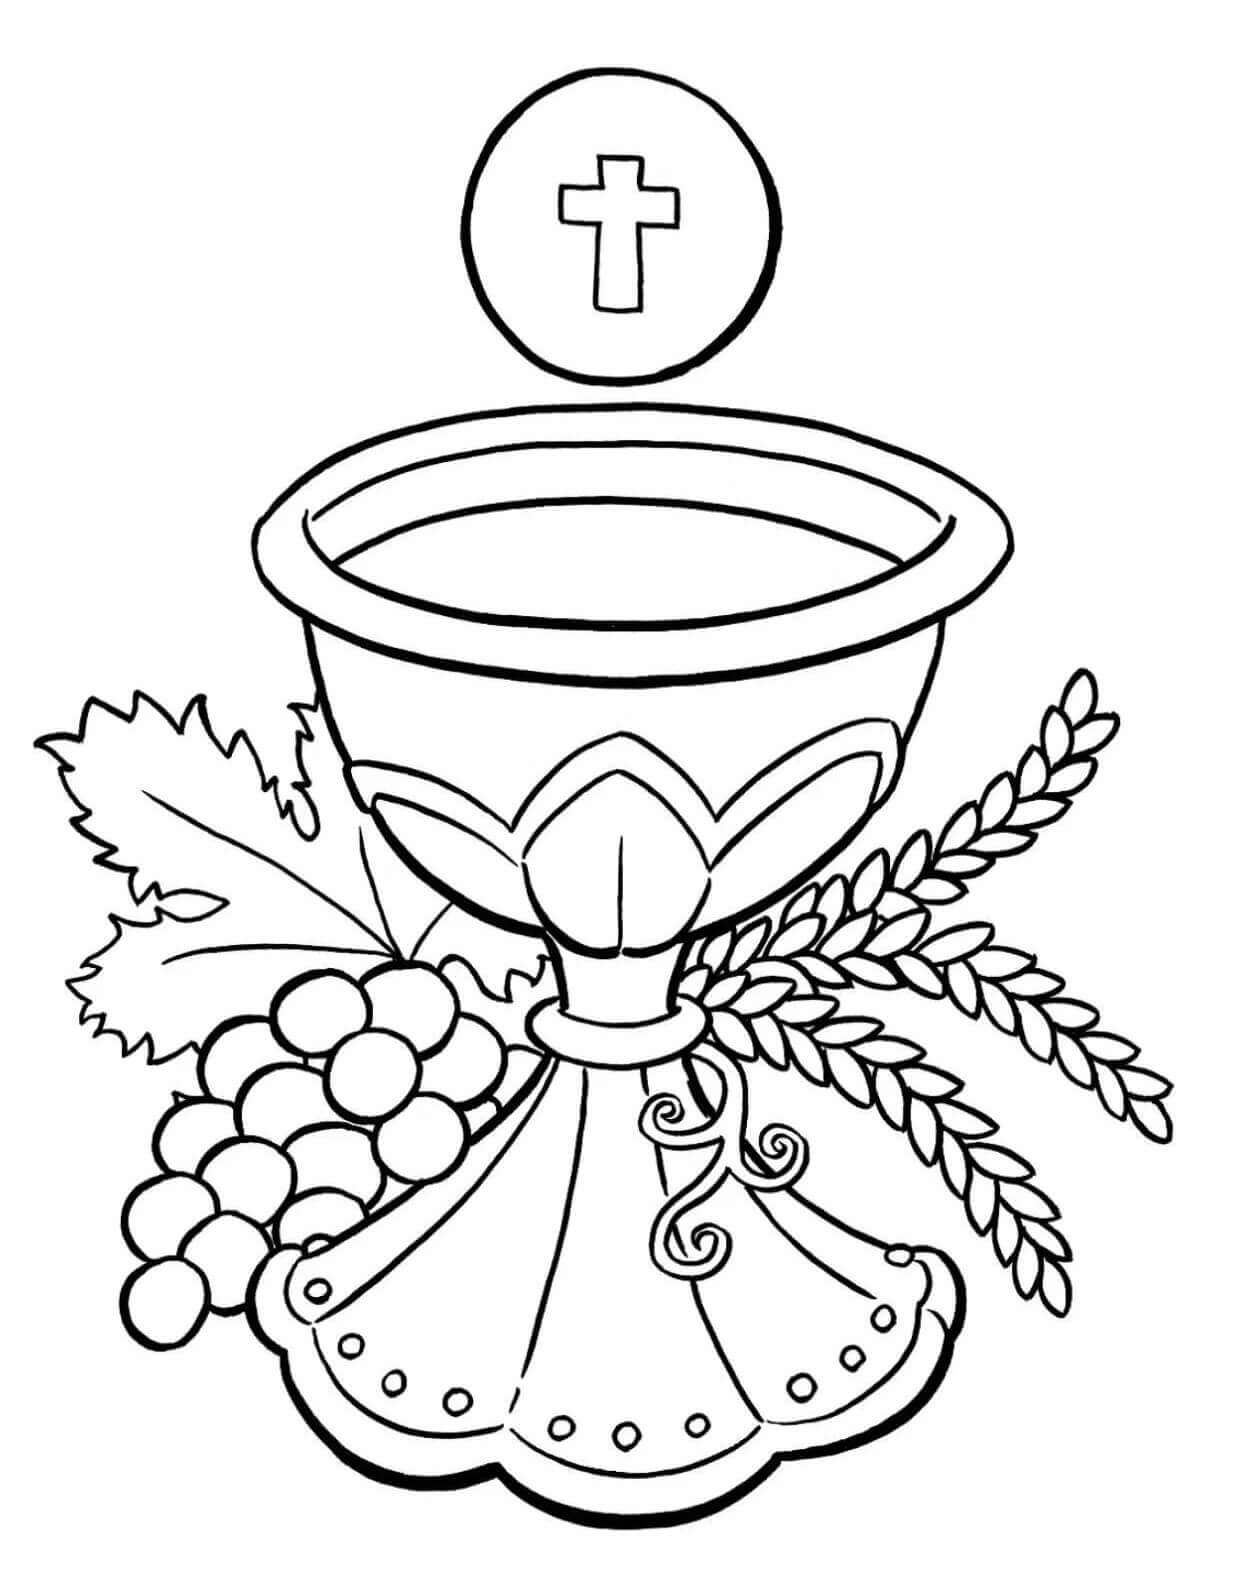 Free Printable Lent Coloring Pages (Catholic Lenten Coloring Pages)